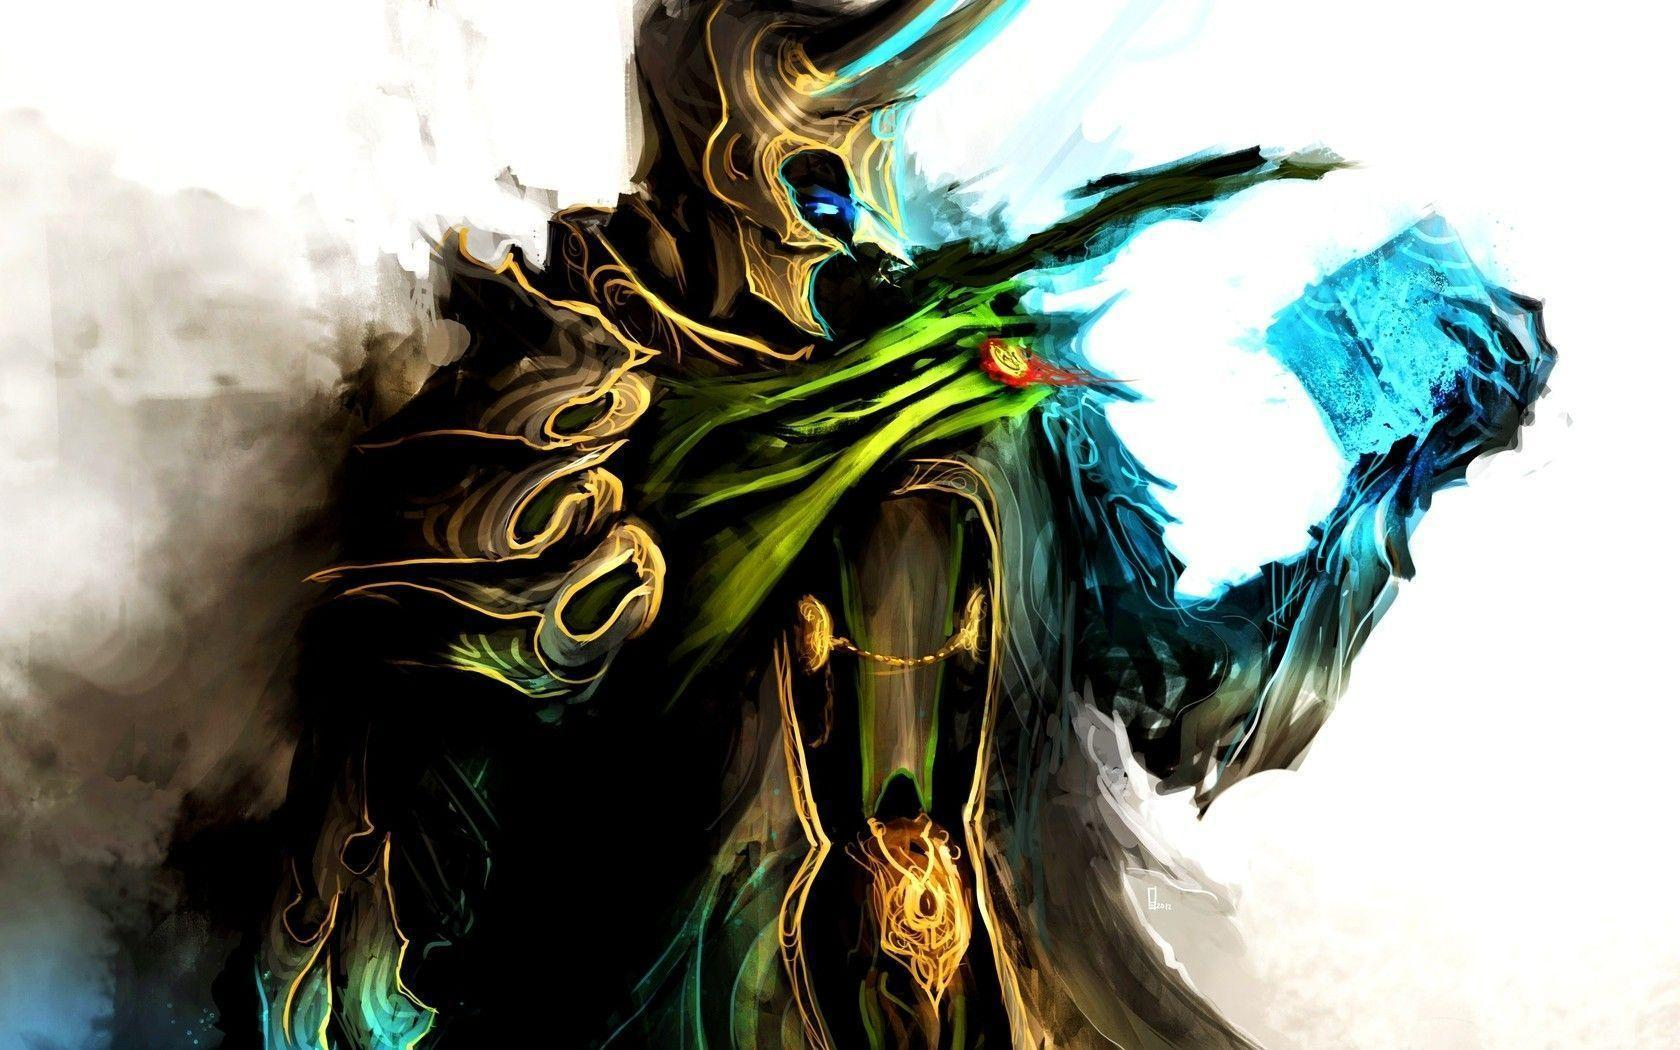 loki background for tigger - photo #23